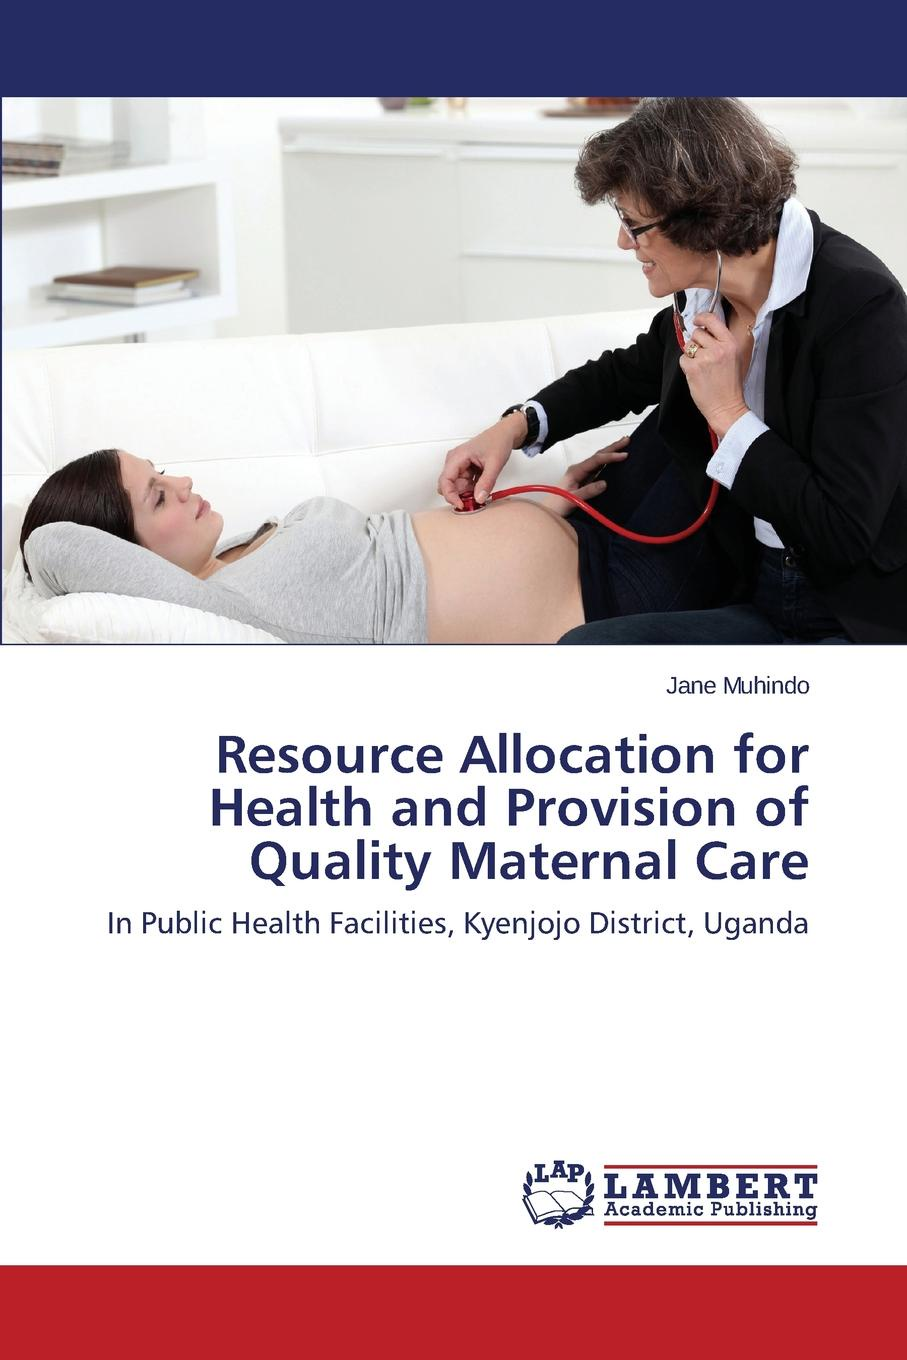 Muhindo Jane Resource Allocation for Health and Provision of Quality Maternal Care christian valentin soils as a key component of the critical zone 1 functions and services